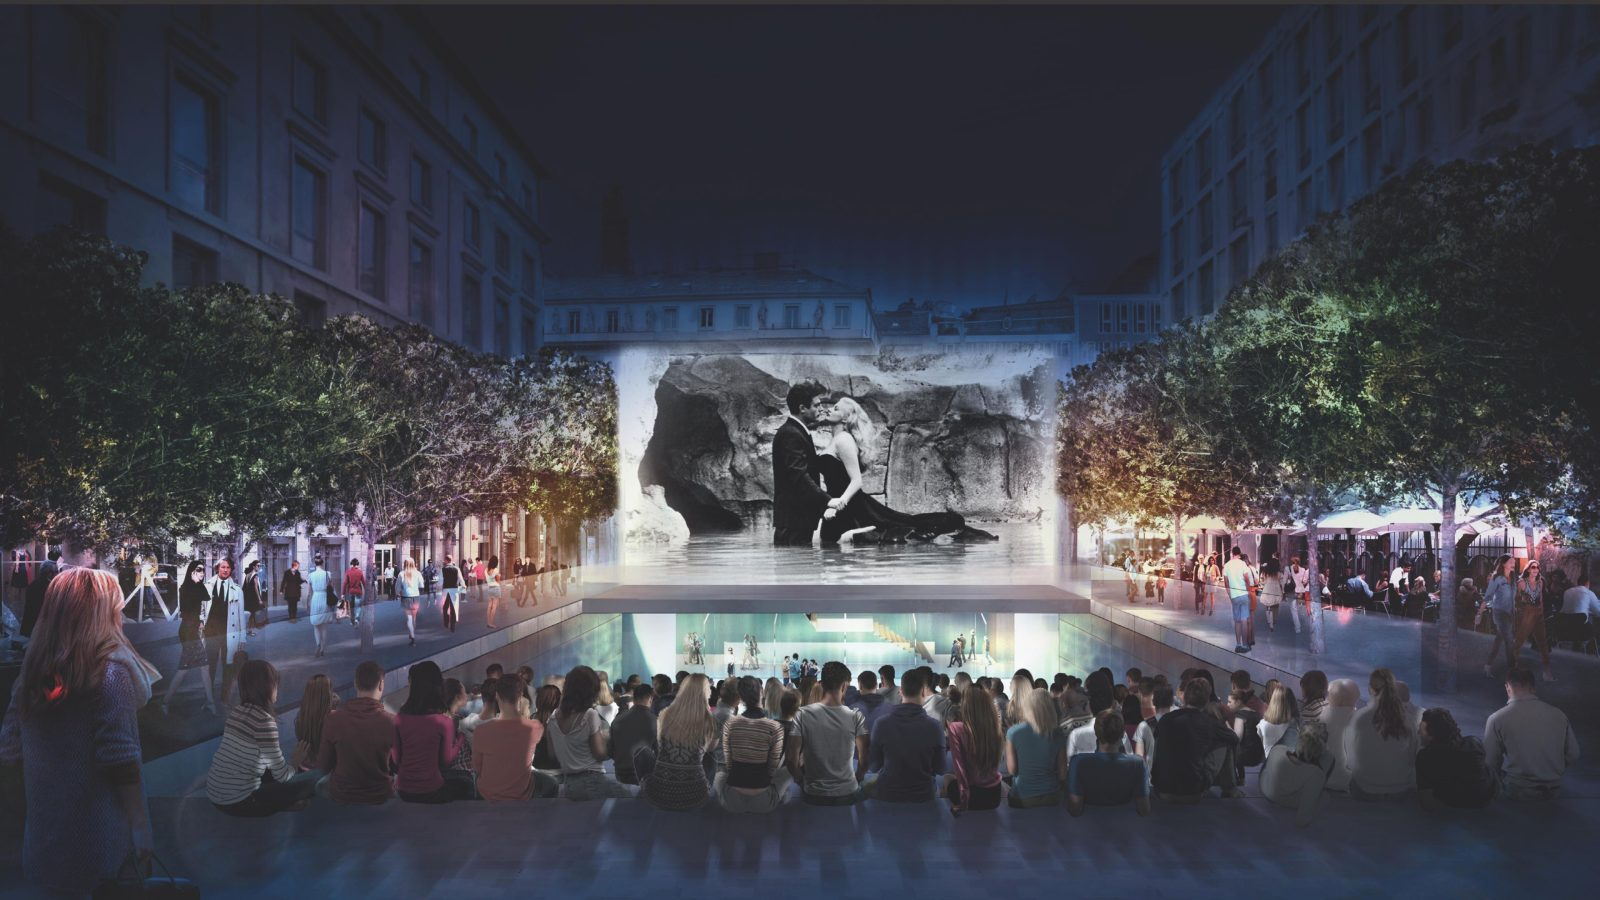 Apples New Outdoor Amphitheater And Retail Store In Milan Italy Set To Open On July 26th